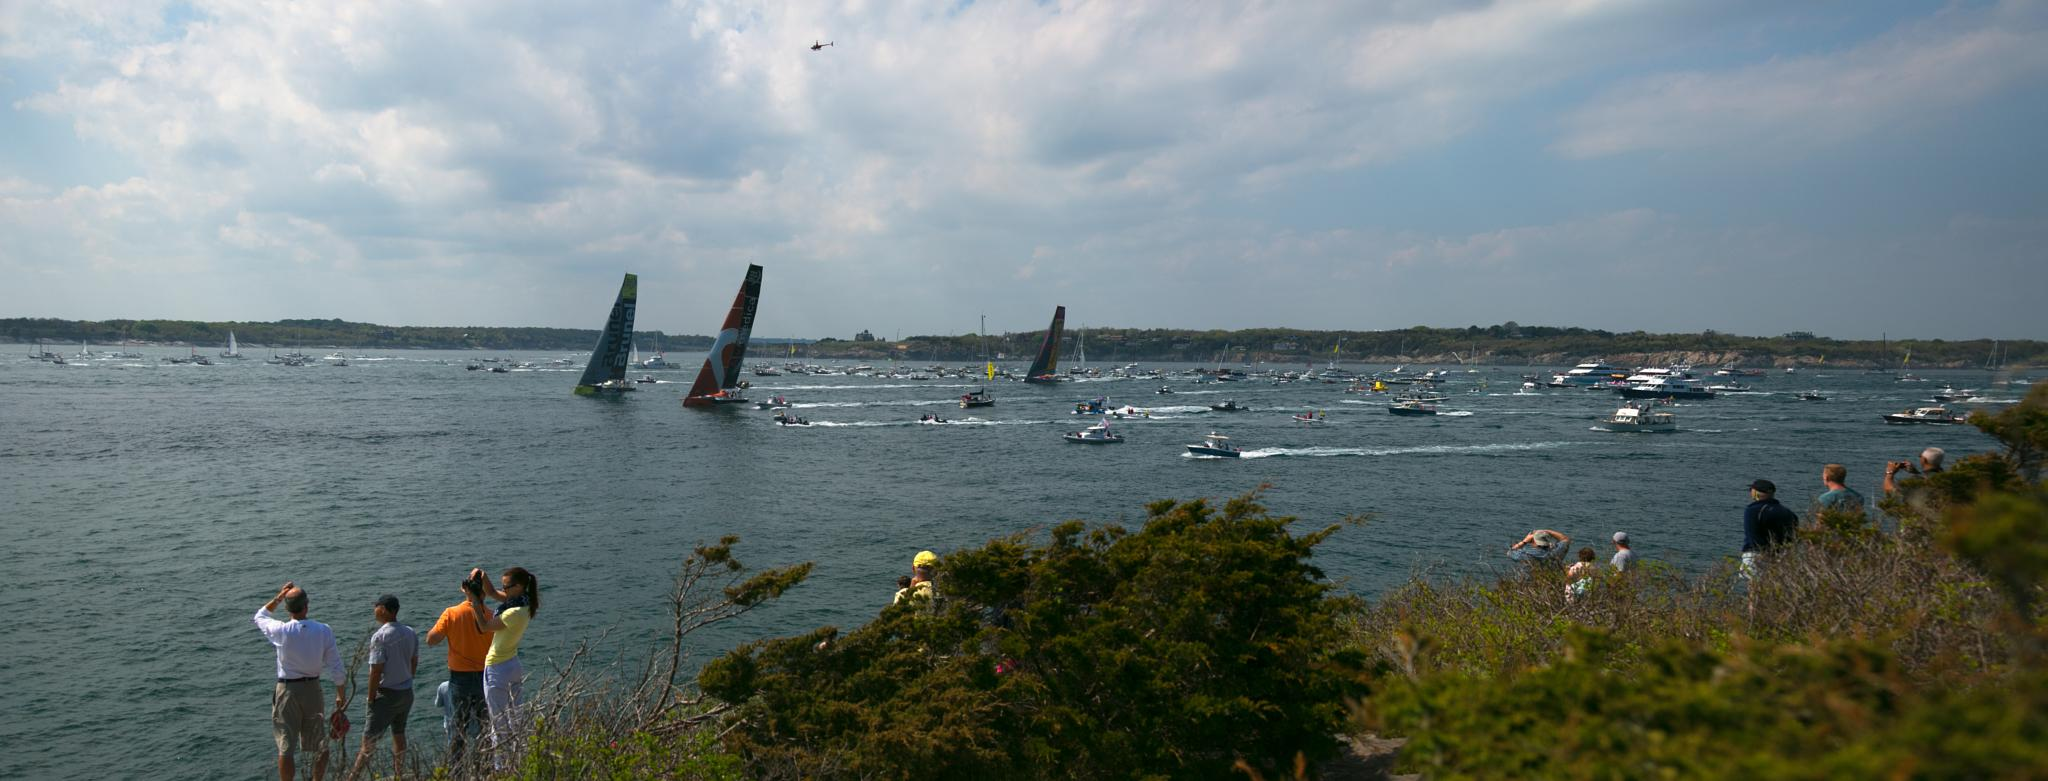 2015 Volvo Classic Ocean Race by Iron Leaf Photography